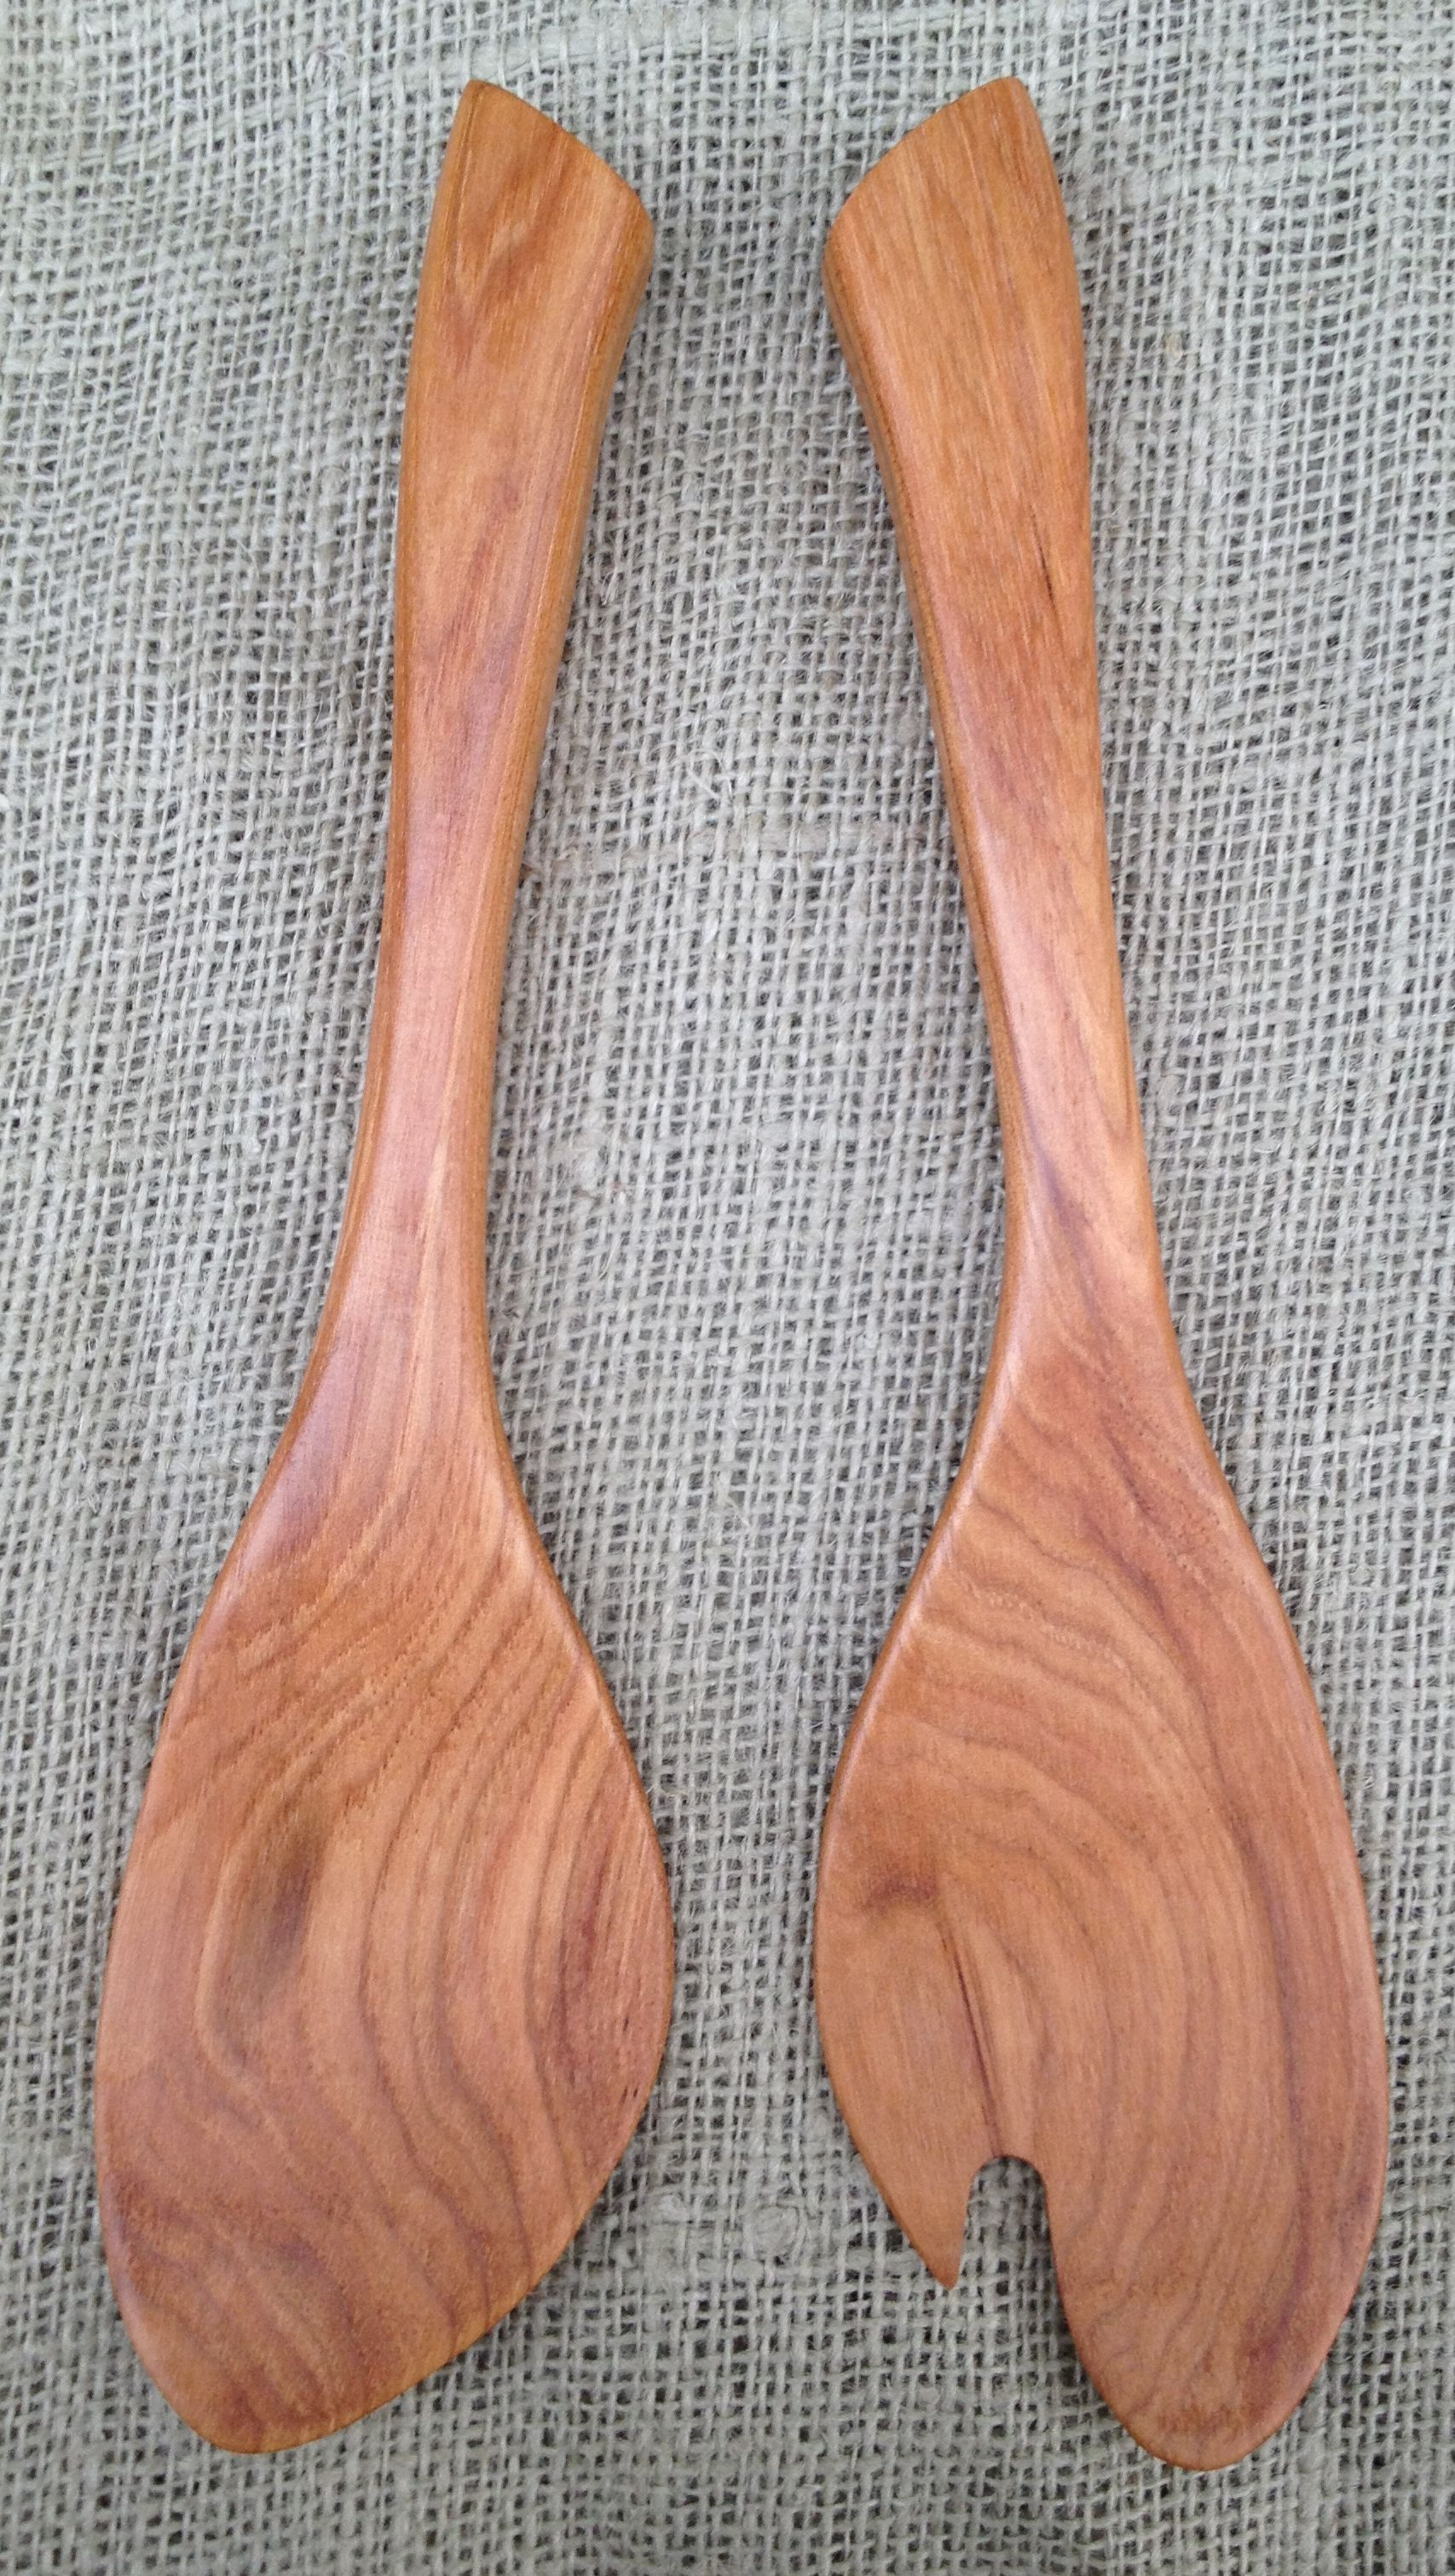 Hand Carved Salad Serving Set Made in the USA with Pennsylvania Black Cherry Wood Wooden Salad Hands Handmade Cherry Salad Servers